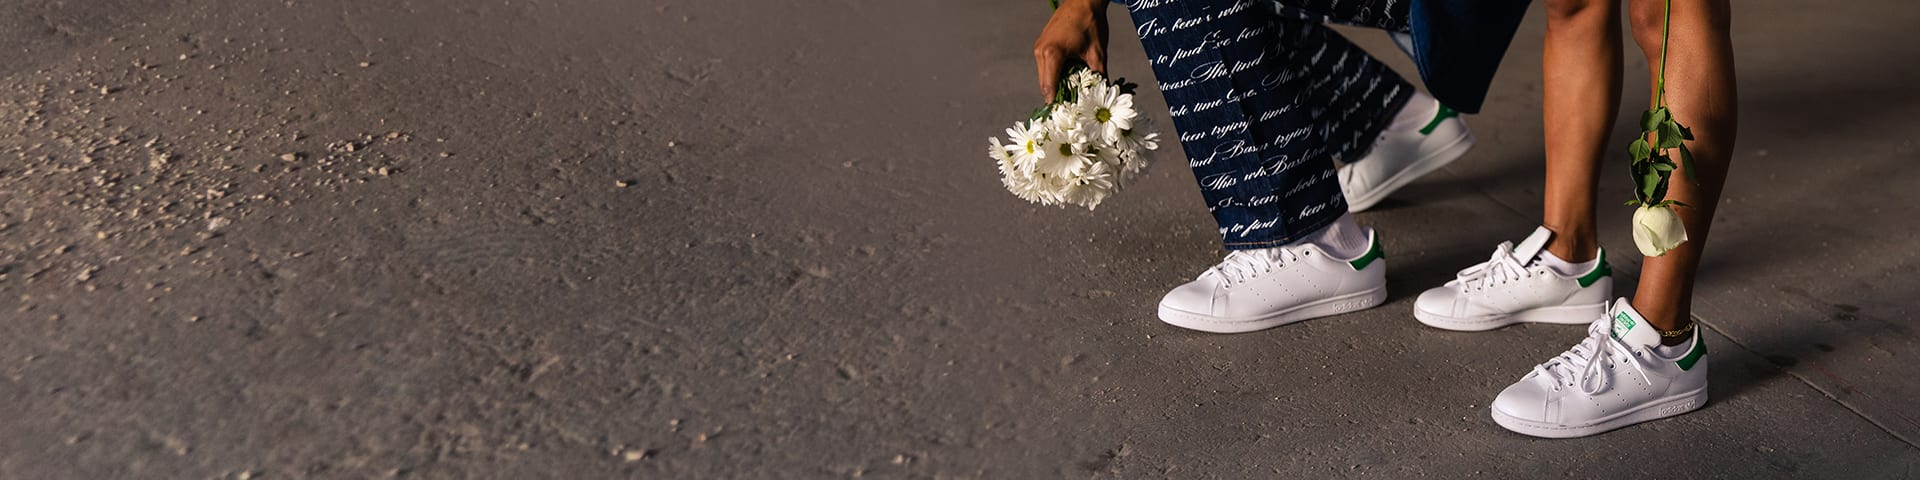 Stan Smith Shoes & Sneakers | Members Get 33% Off with Code ALLSET